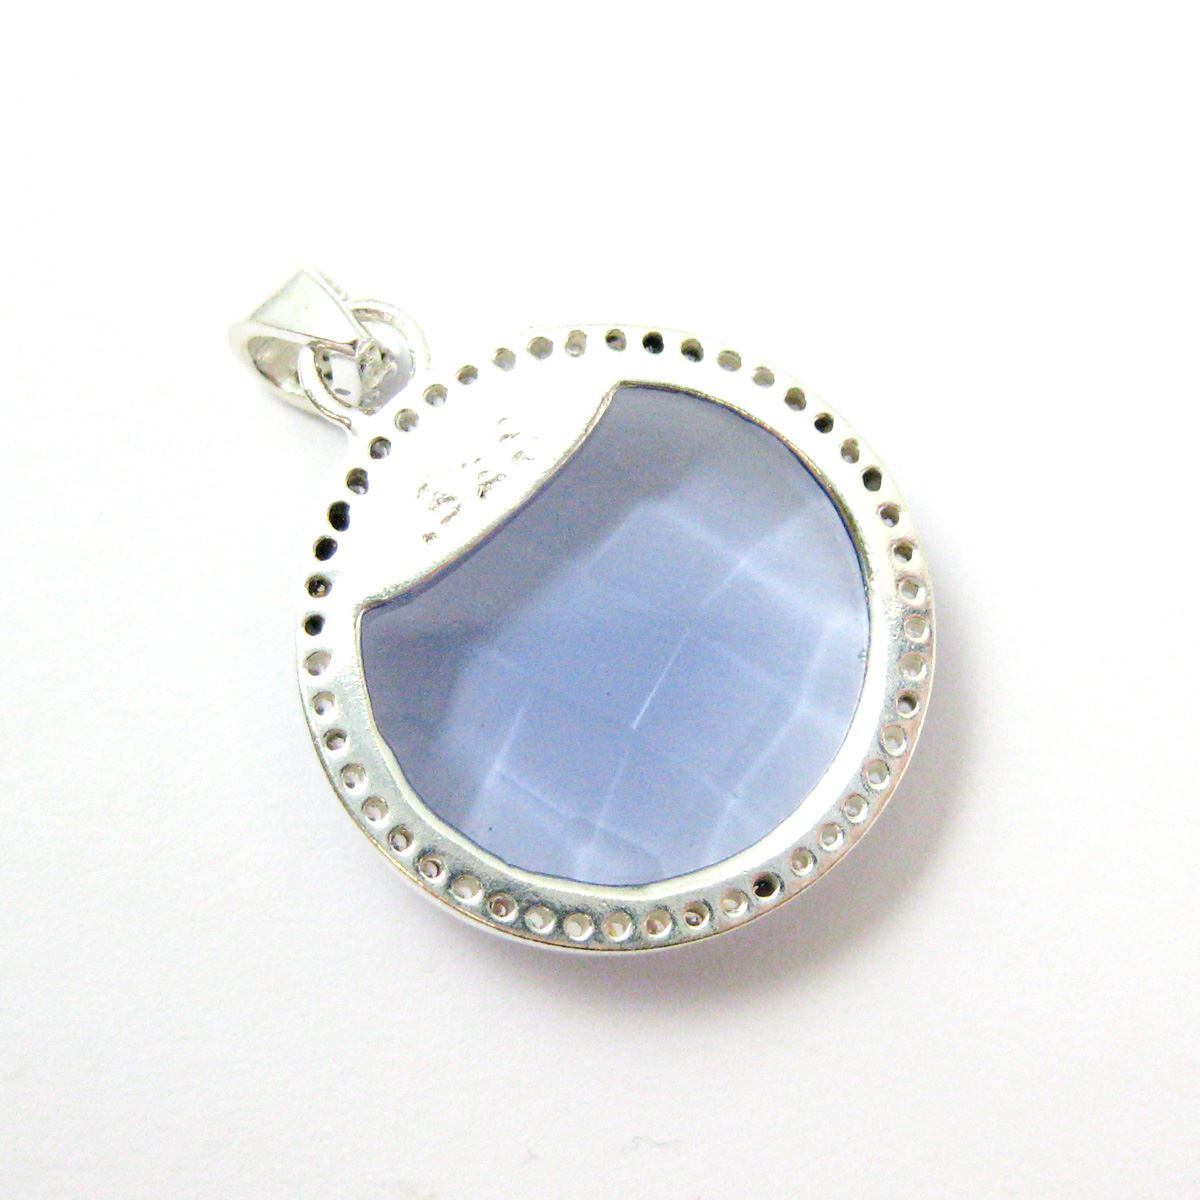 Sterling Silver Pave Bezel Gemstone Pendant - Cubic Zirconia Pave Setting -  Round Faceted Stone-Iolite Quartz- 21mm